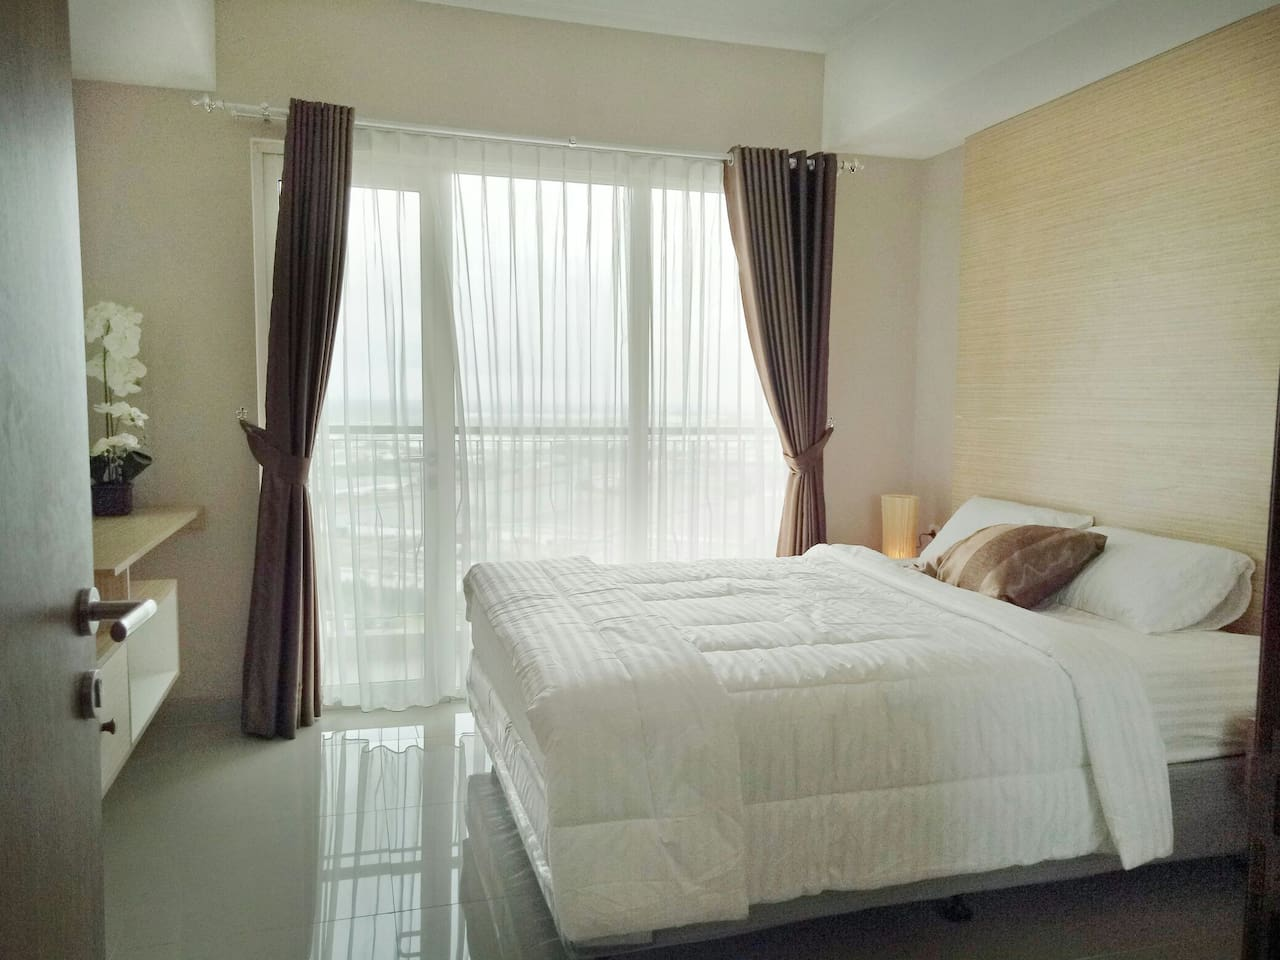 A cozy Luxury  Modern Bedroom  equipped  byTV cable  with large window  city view